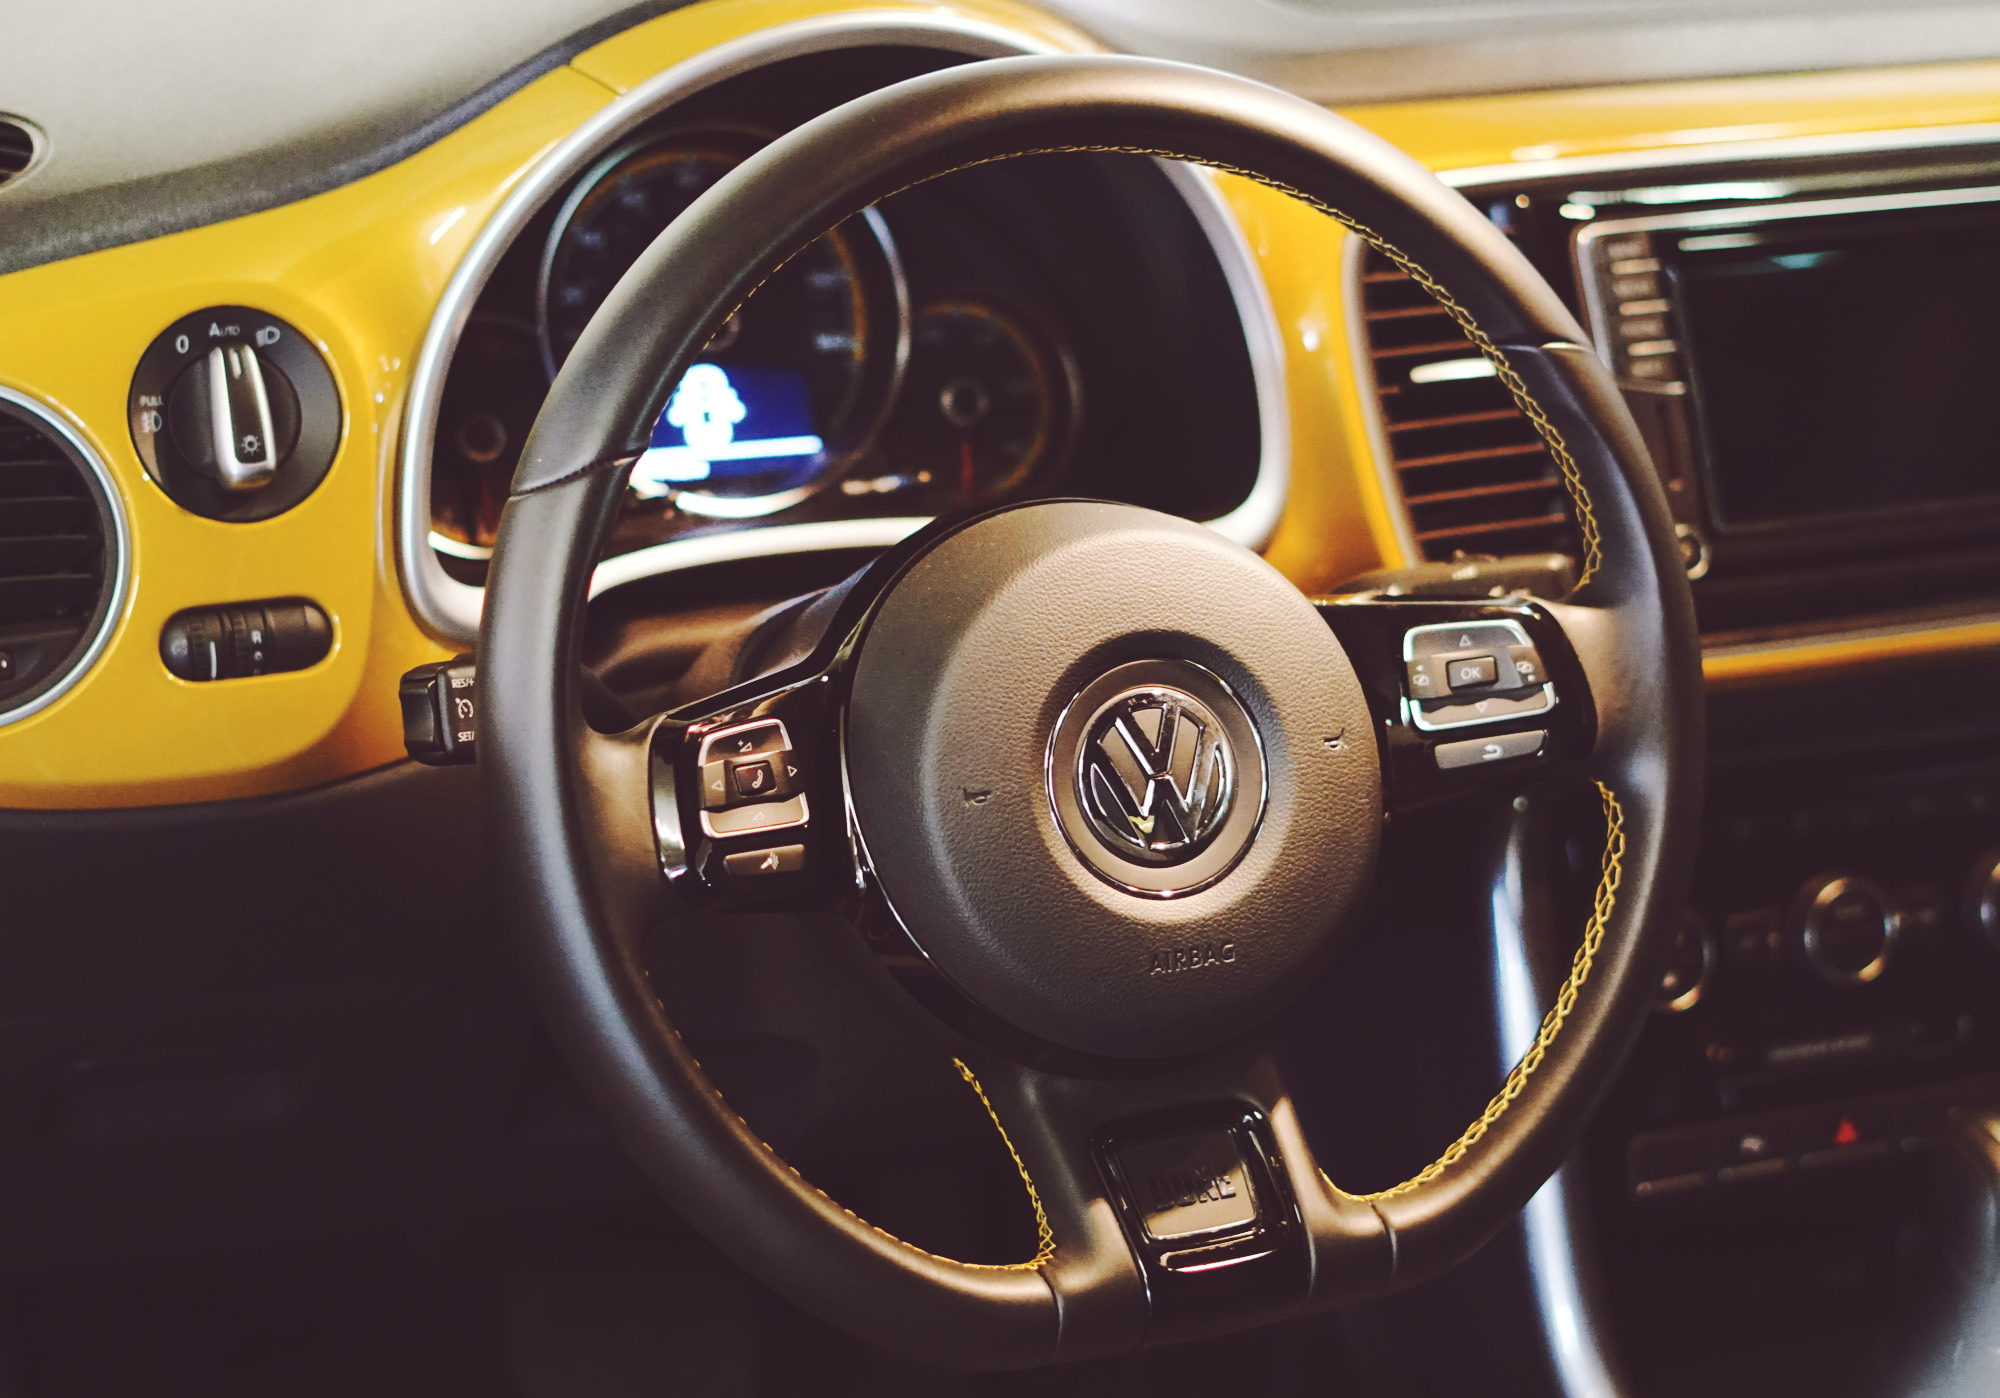 Steering Wheel Detail of Volkswagen Dune Convertible